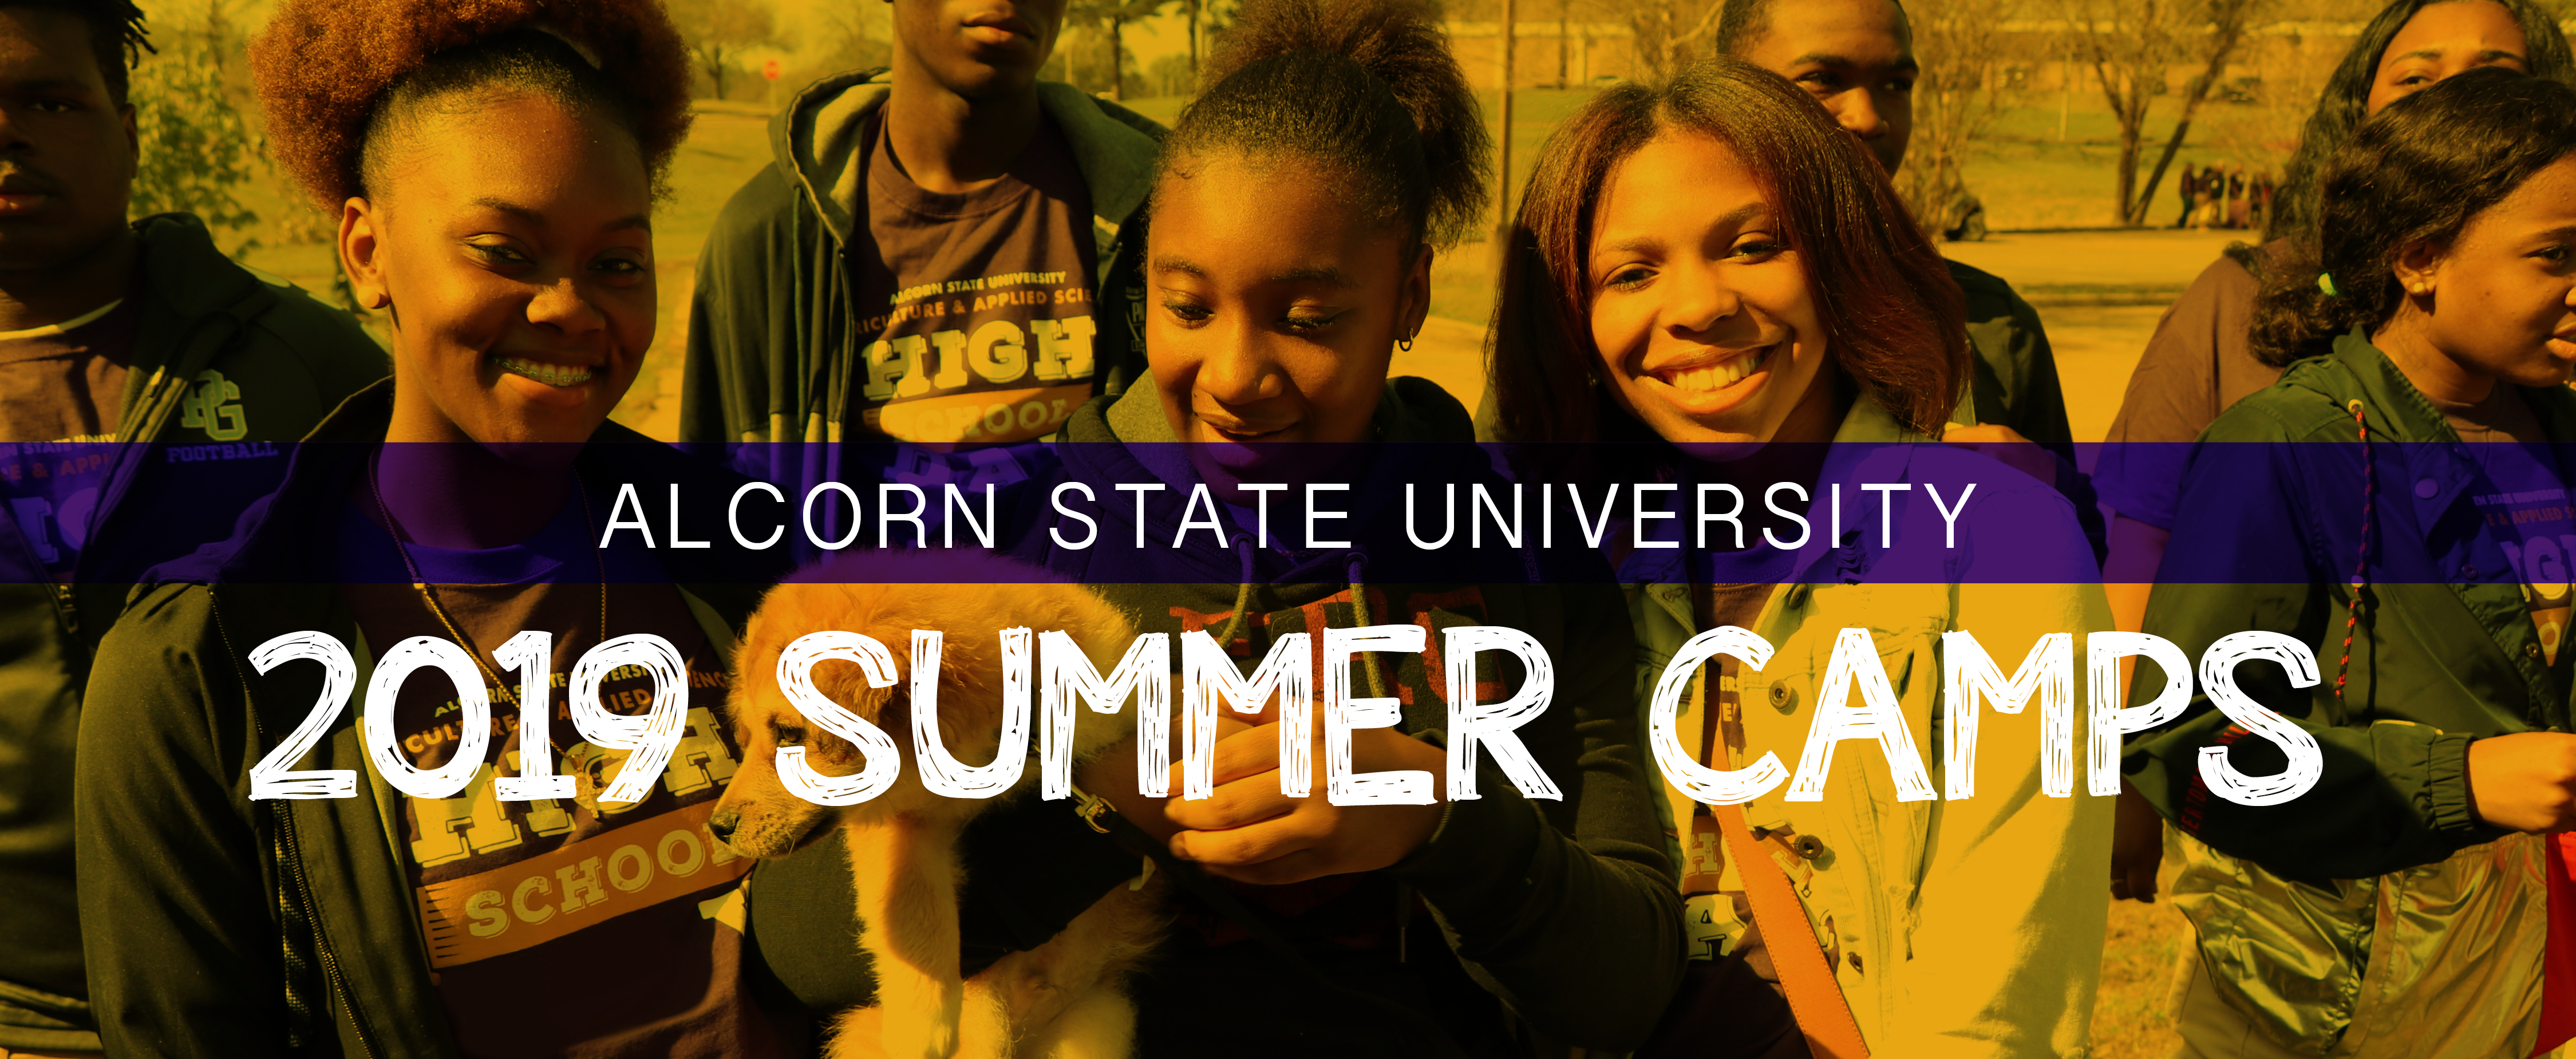 Alcorn State University 2019 Summer Camps Flyer